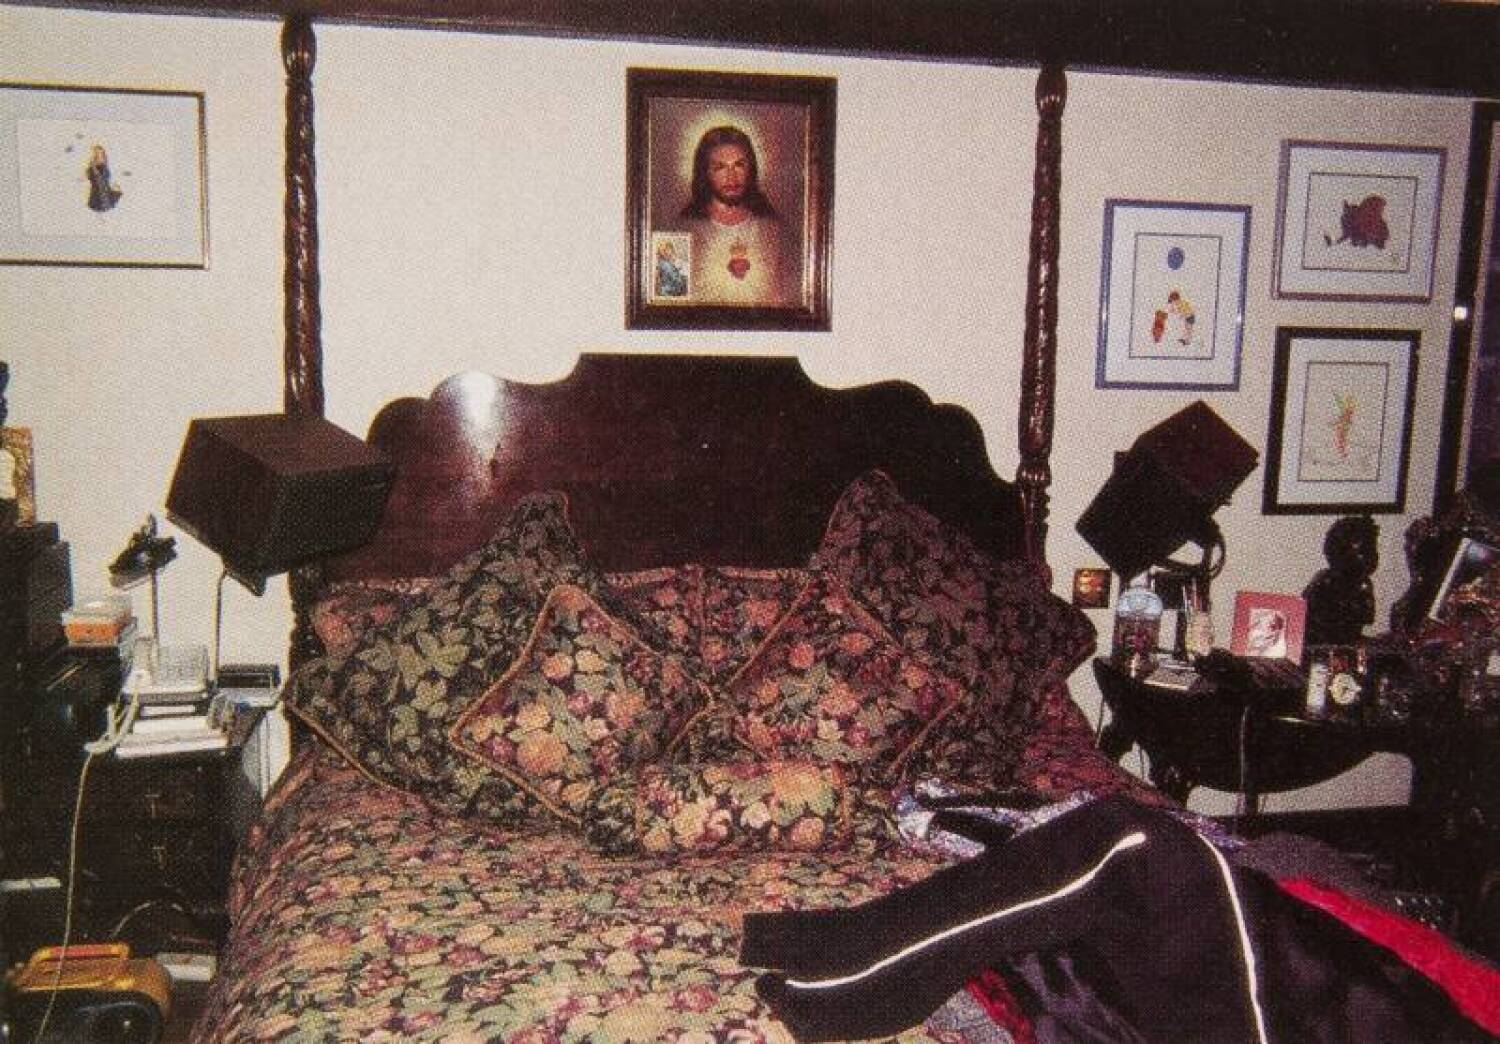 Image of God over Michael Jackson's bed